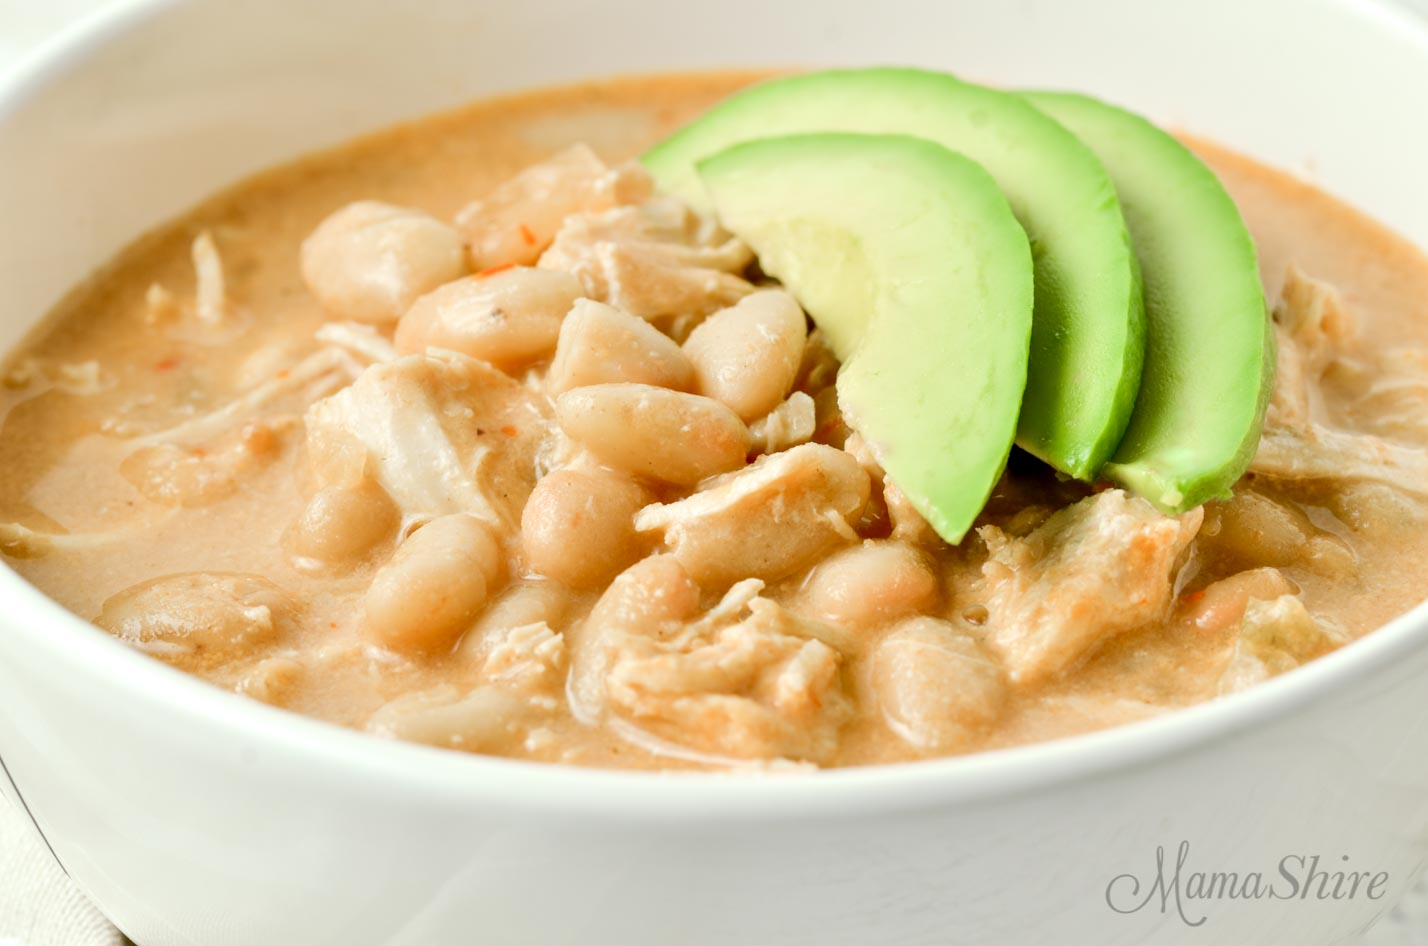 White Chicken Chili with avocado slices